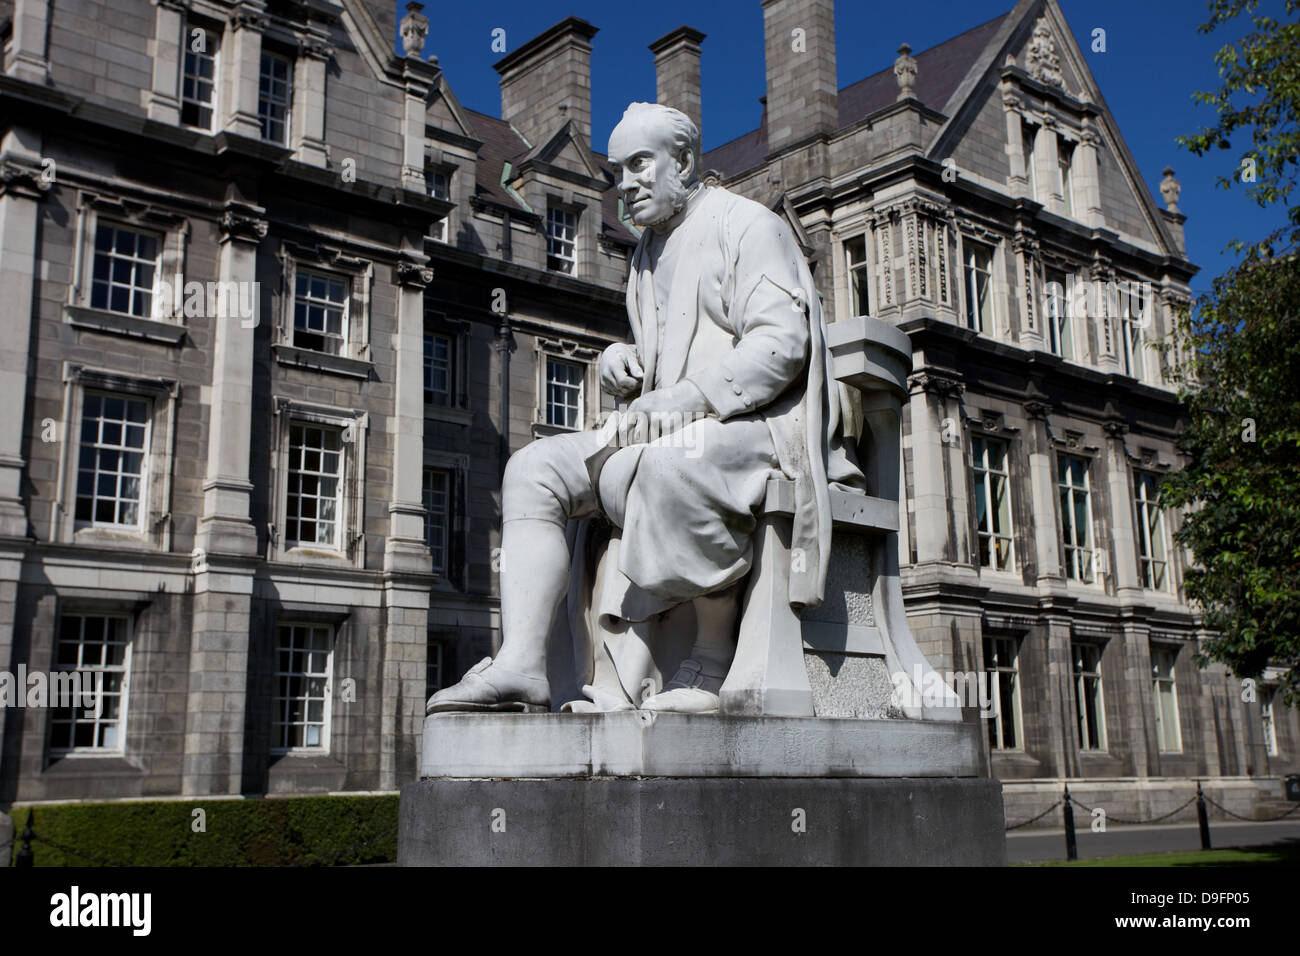 Sculpture of George Salmon at Trinity College Dublin Ireland - Stock Image